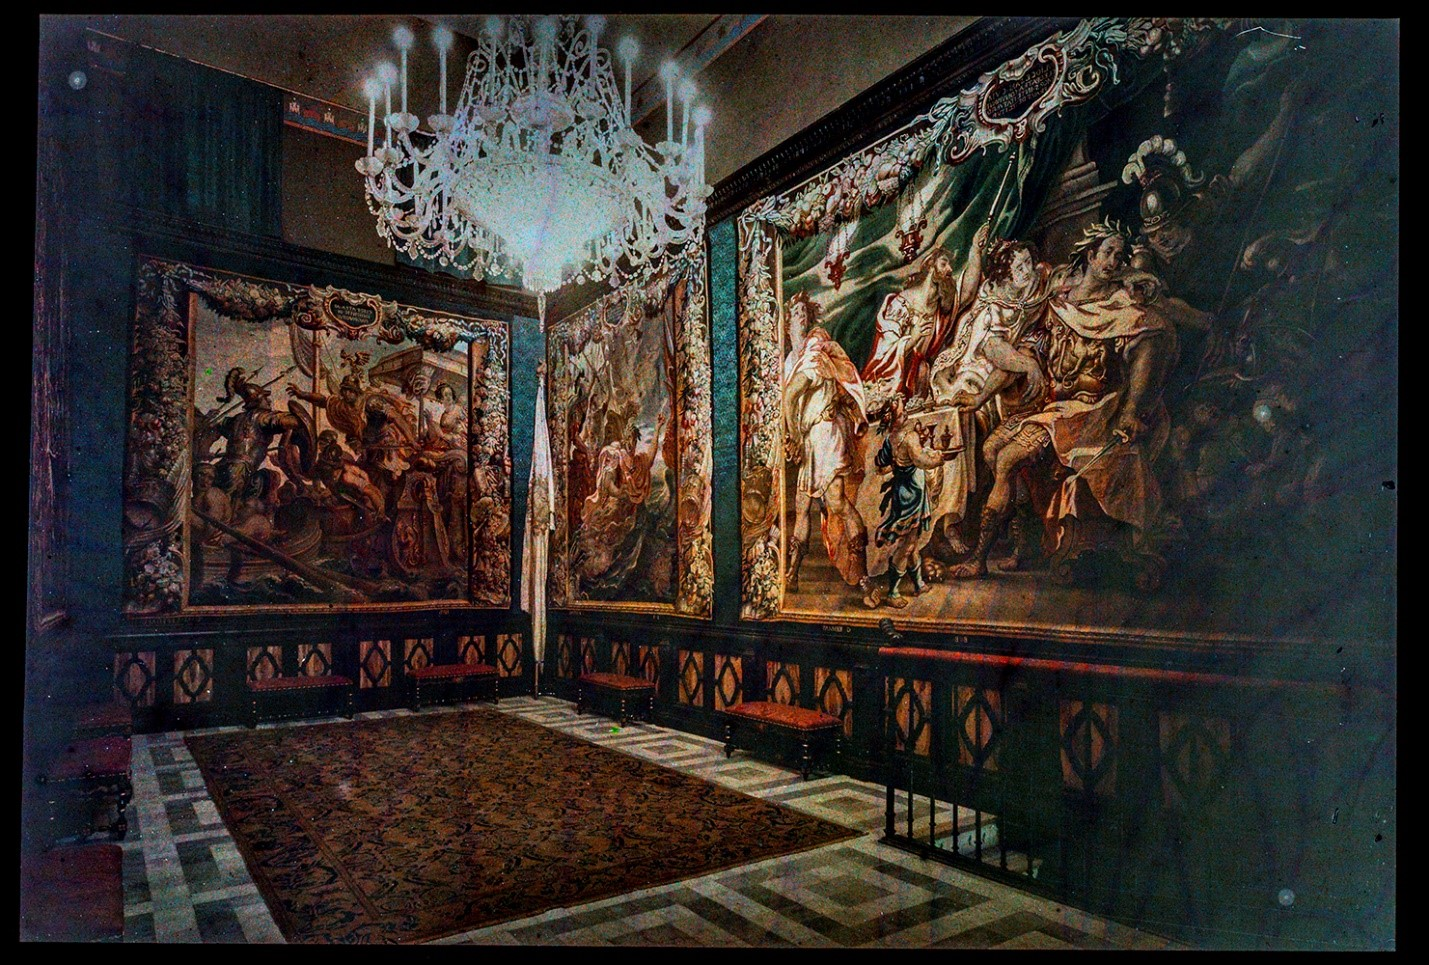 Color plate Auto-chrome slide of the interior of Maricel with Charles Deering's tapestry collection